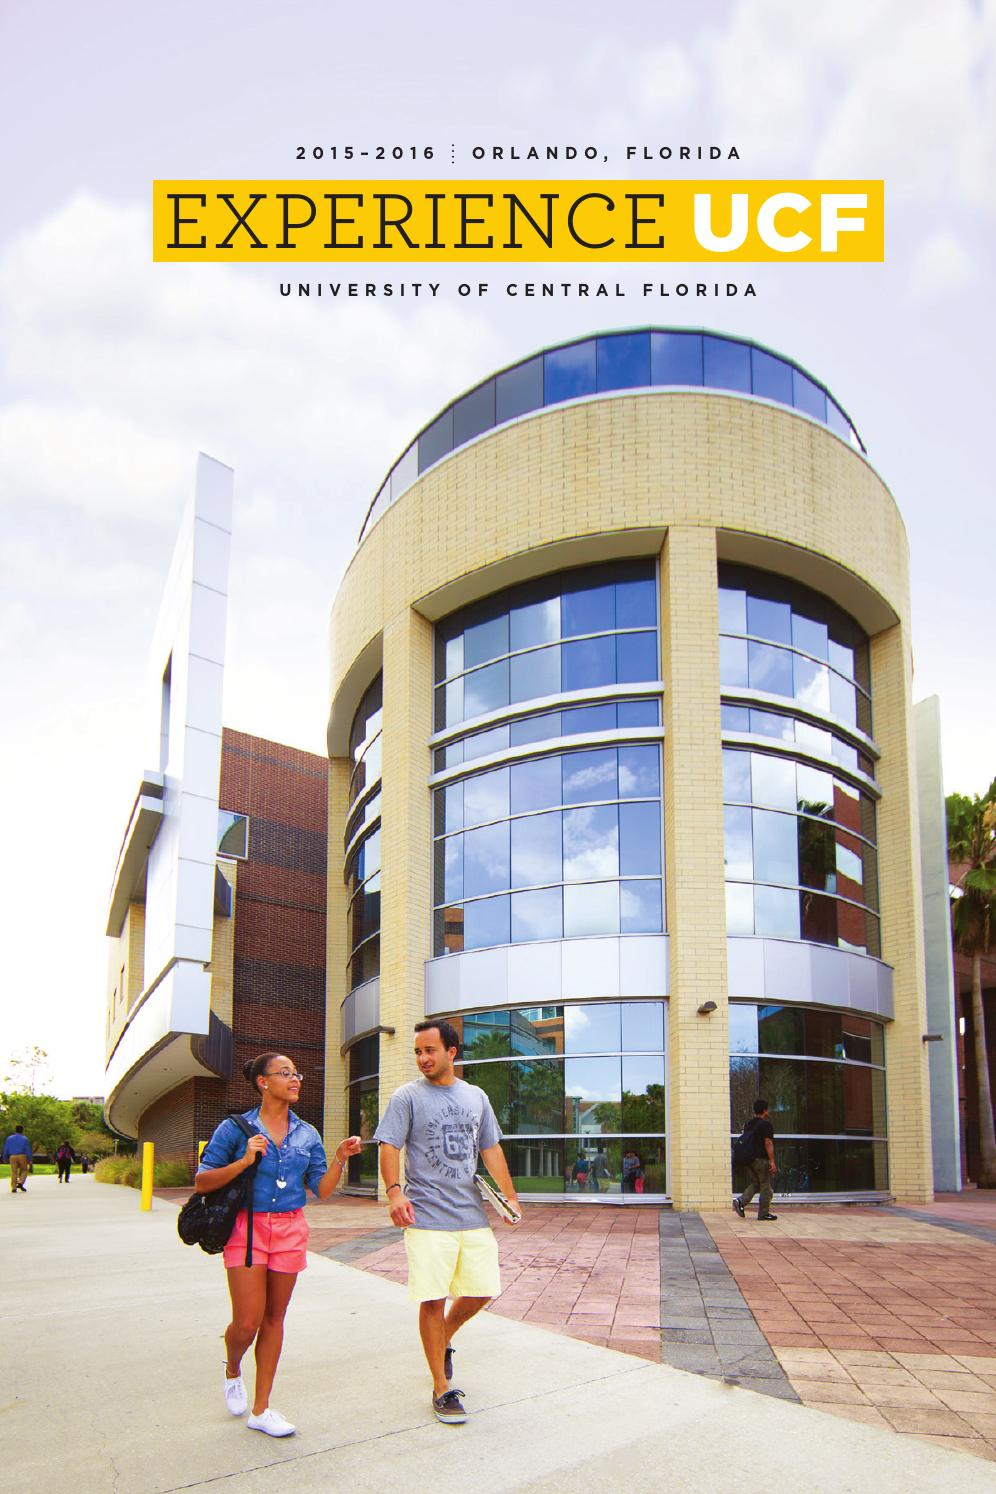 ucf msw personal statement University of central florida, continuing education and personal growth of the professionals the mission statement of the university of central florida.